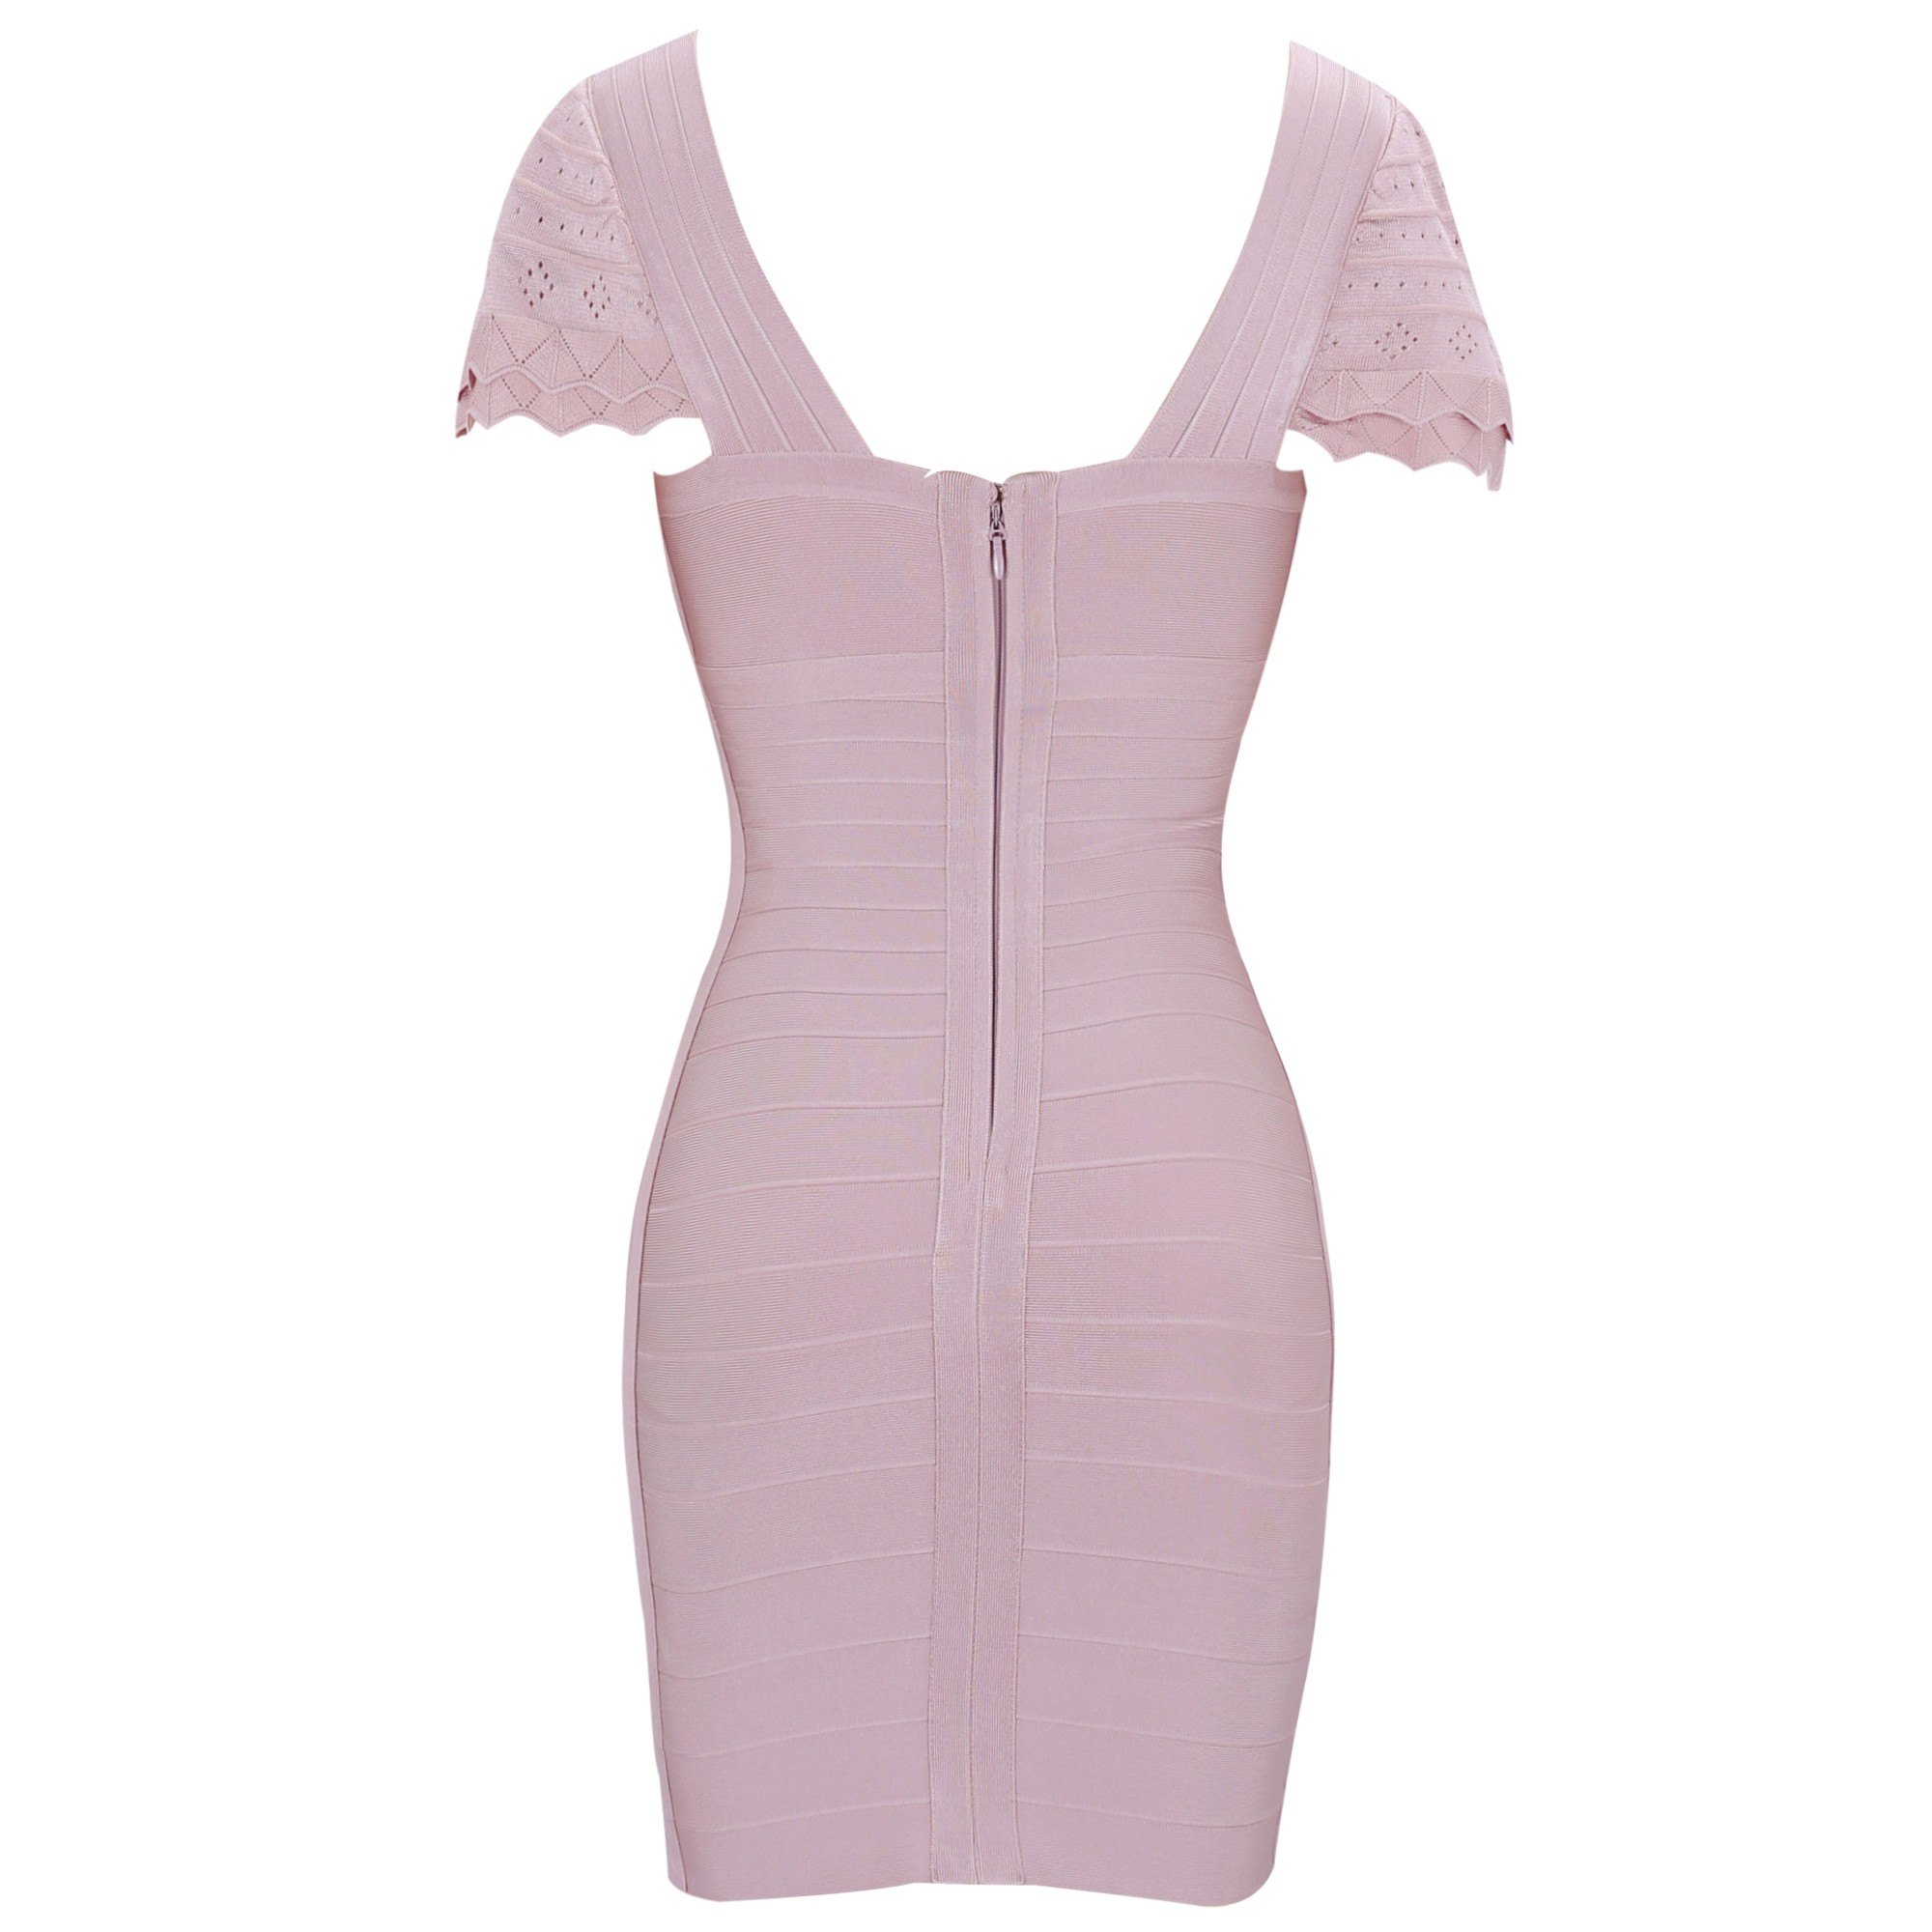 Rayon - Nude V Neck Cap Sleeve Mini Scolloped Sleeves Lace Material Cute Bandage Dress SW024-Nude